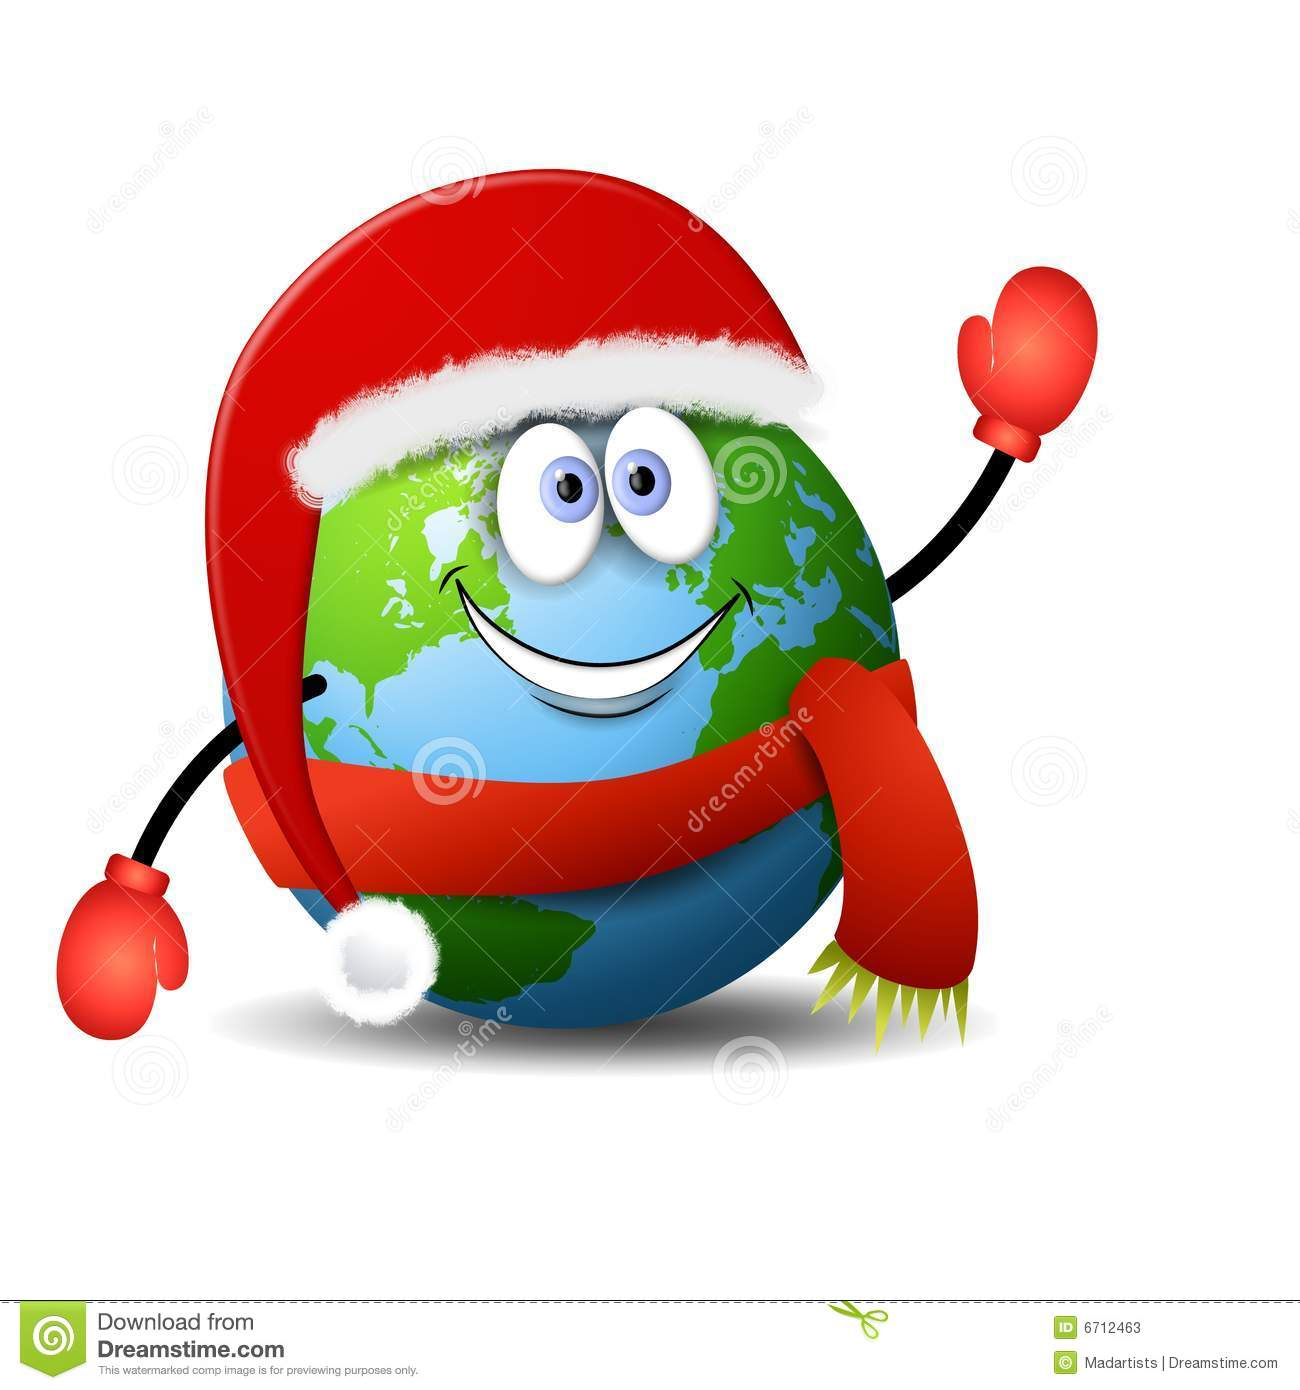 ... in red Santa hat, scarf and mittens with a big smile on his face